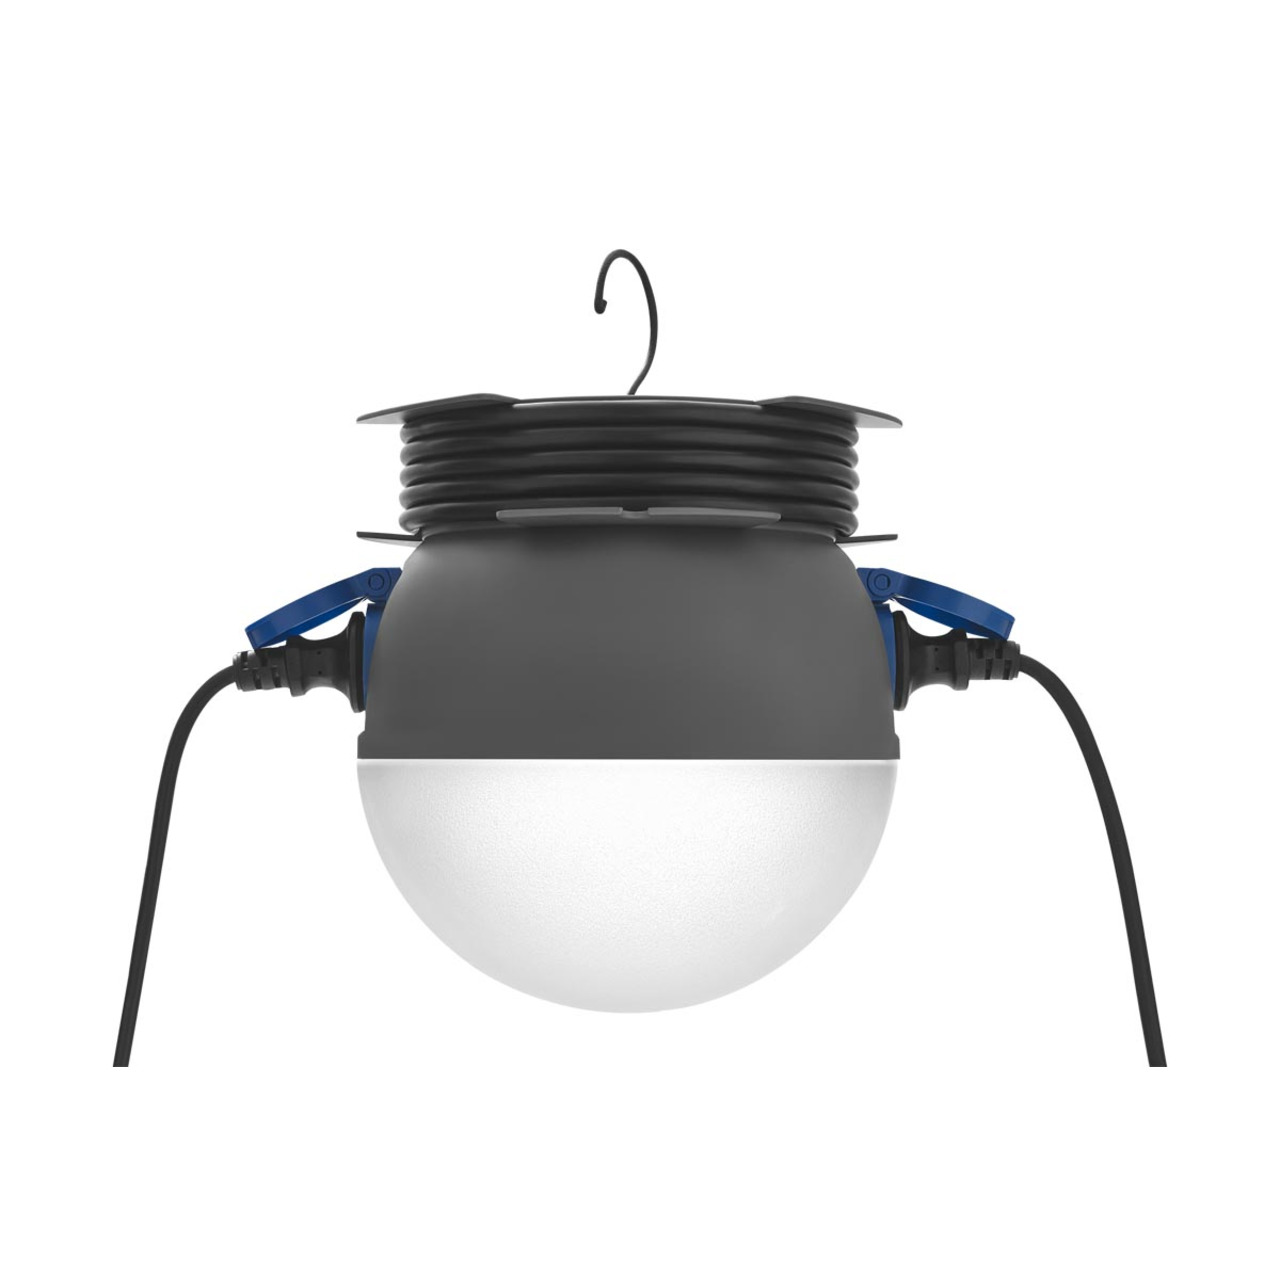 Ansmann 20-W-LED-Arbeitsleuchte Future Ball- 2400 lm- IP54